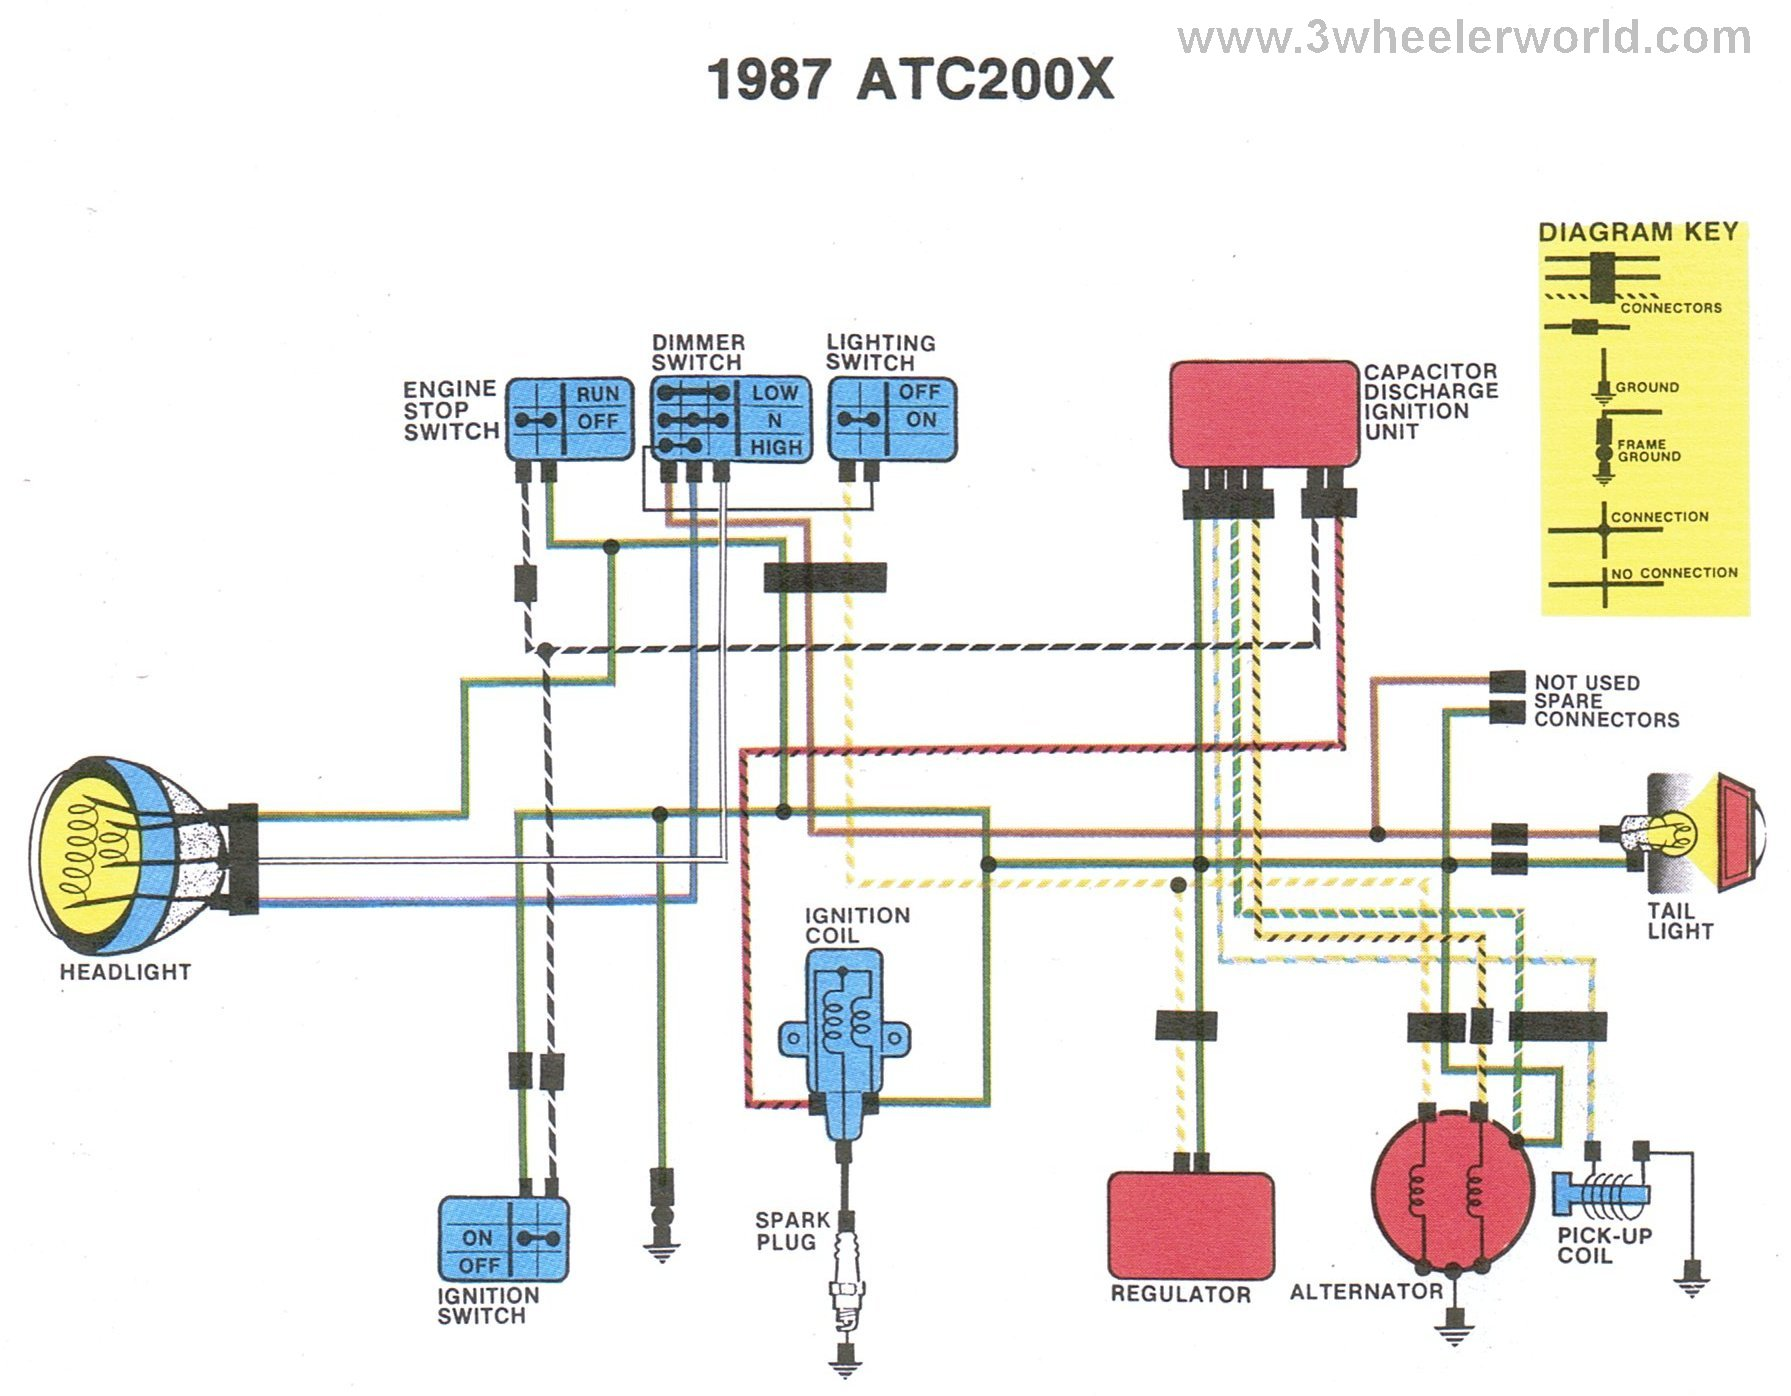 ATC200Xx87 3 wheeler world tech help honda wiring diagrams  at bakdesigns.co